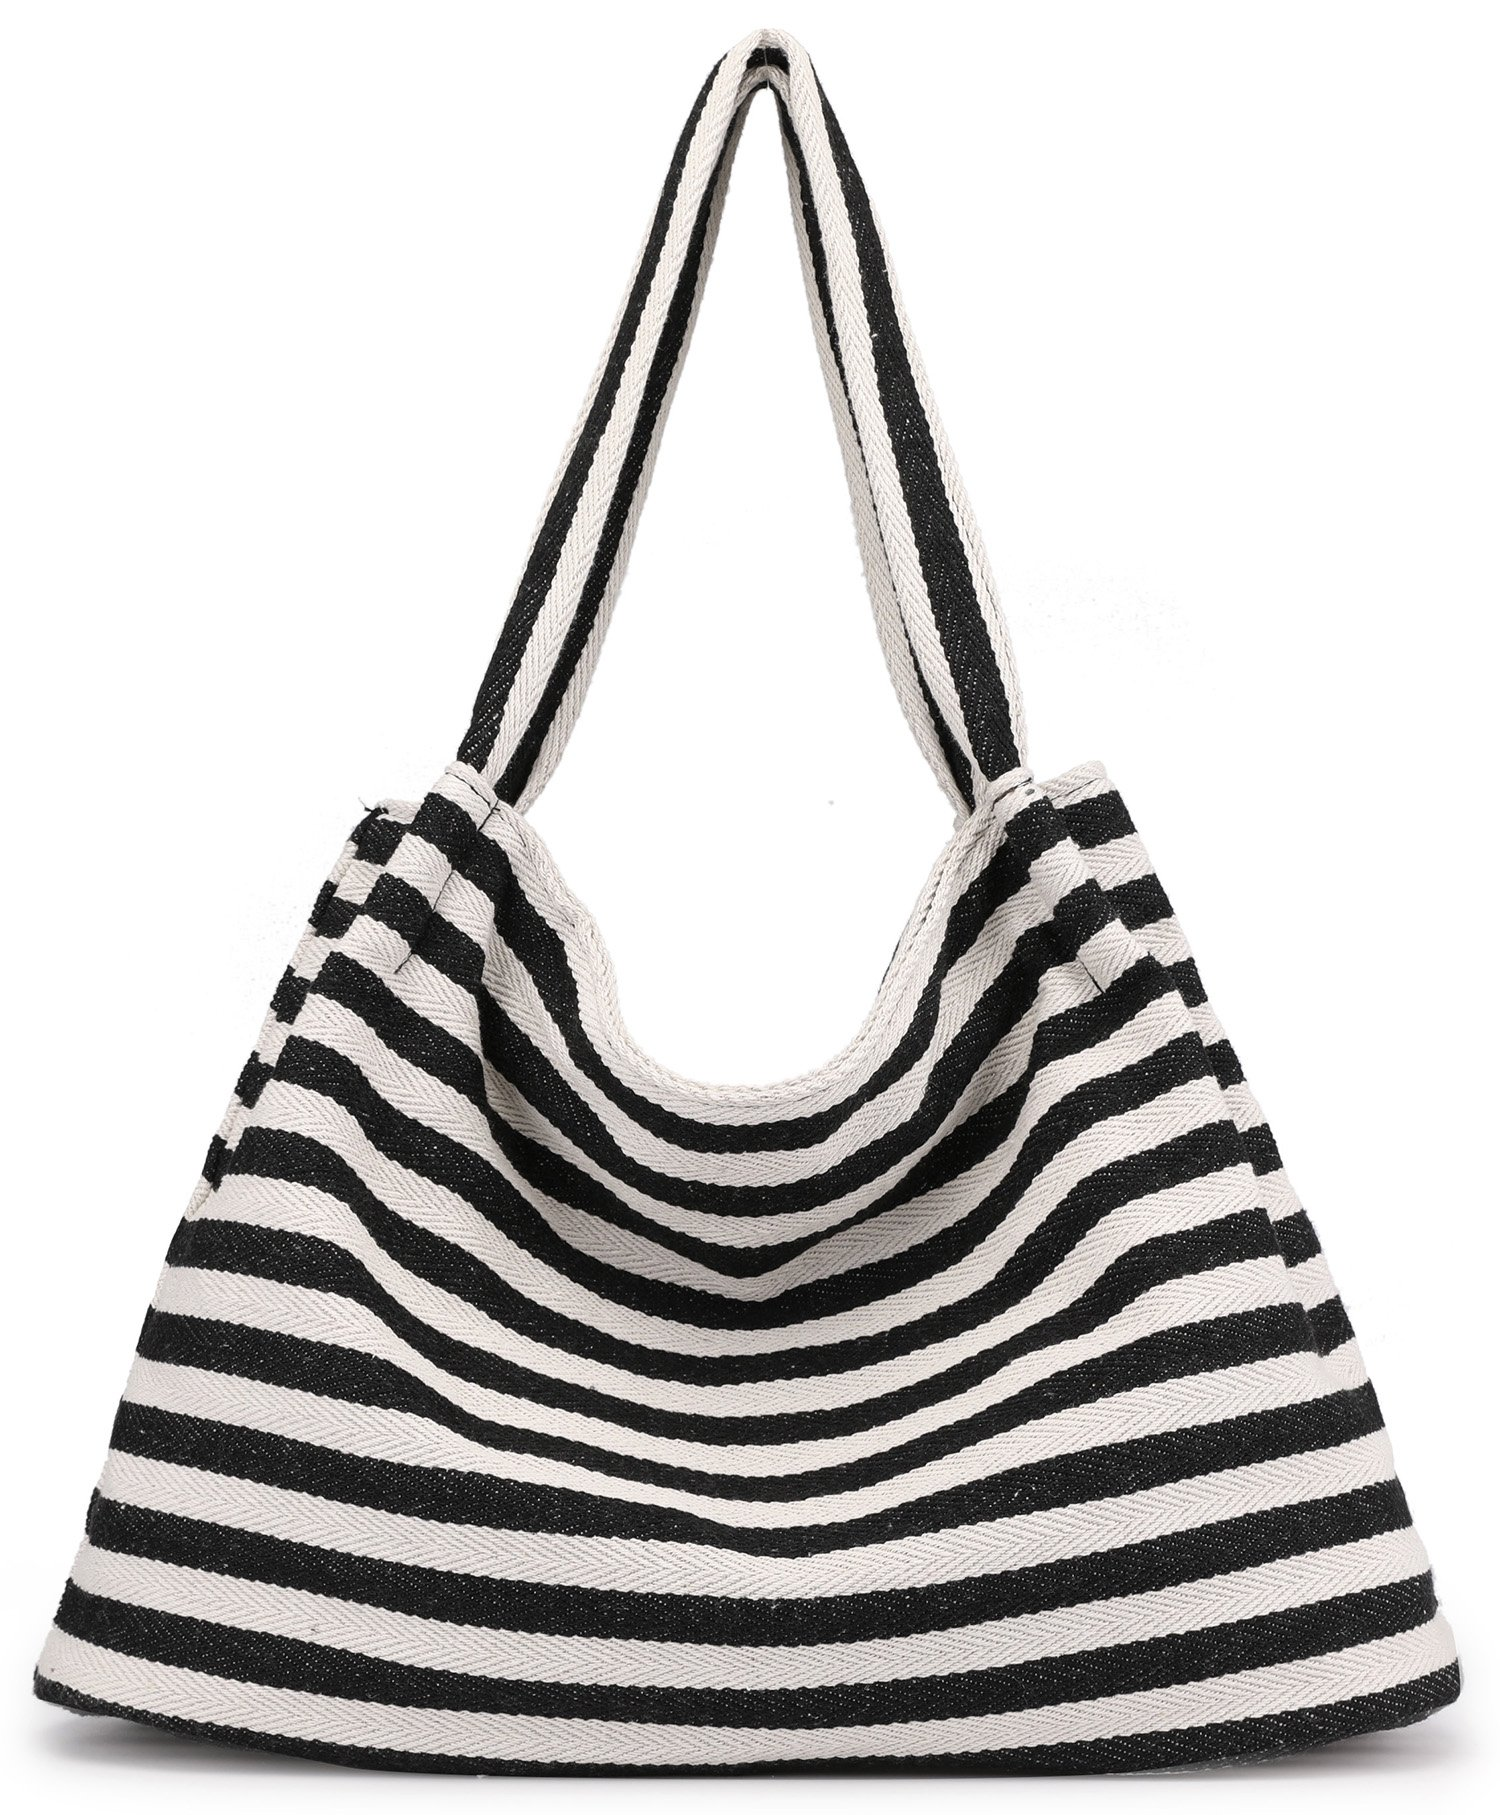 Striped Cotton Canvas Shoulder Hand Bag Zipper Tote for Women